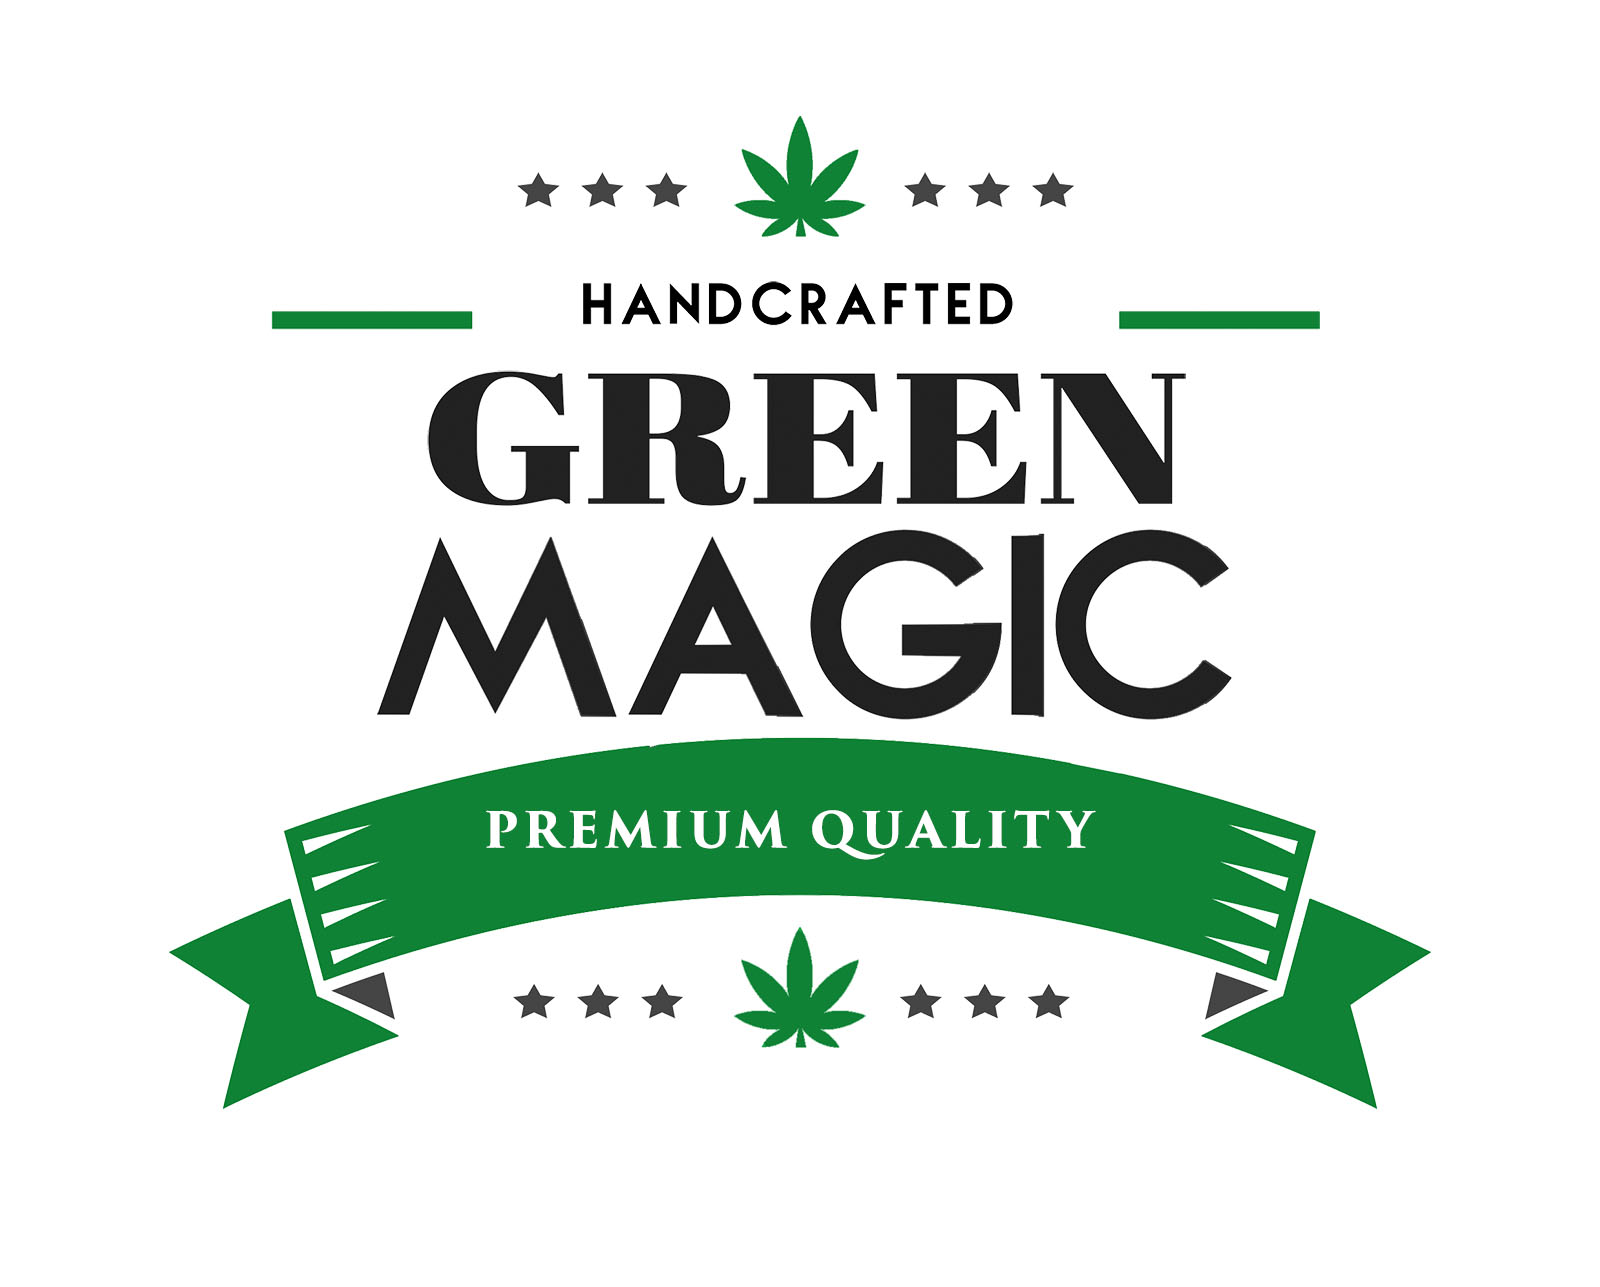 Green Magic - Our goal is to deliver top quality product to our clients while keeping competitive prices. We offer a variety of products in our store with multiple swift delivery options to choose from at check out. We are proud of our customer service as we always value our clients and their input.